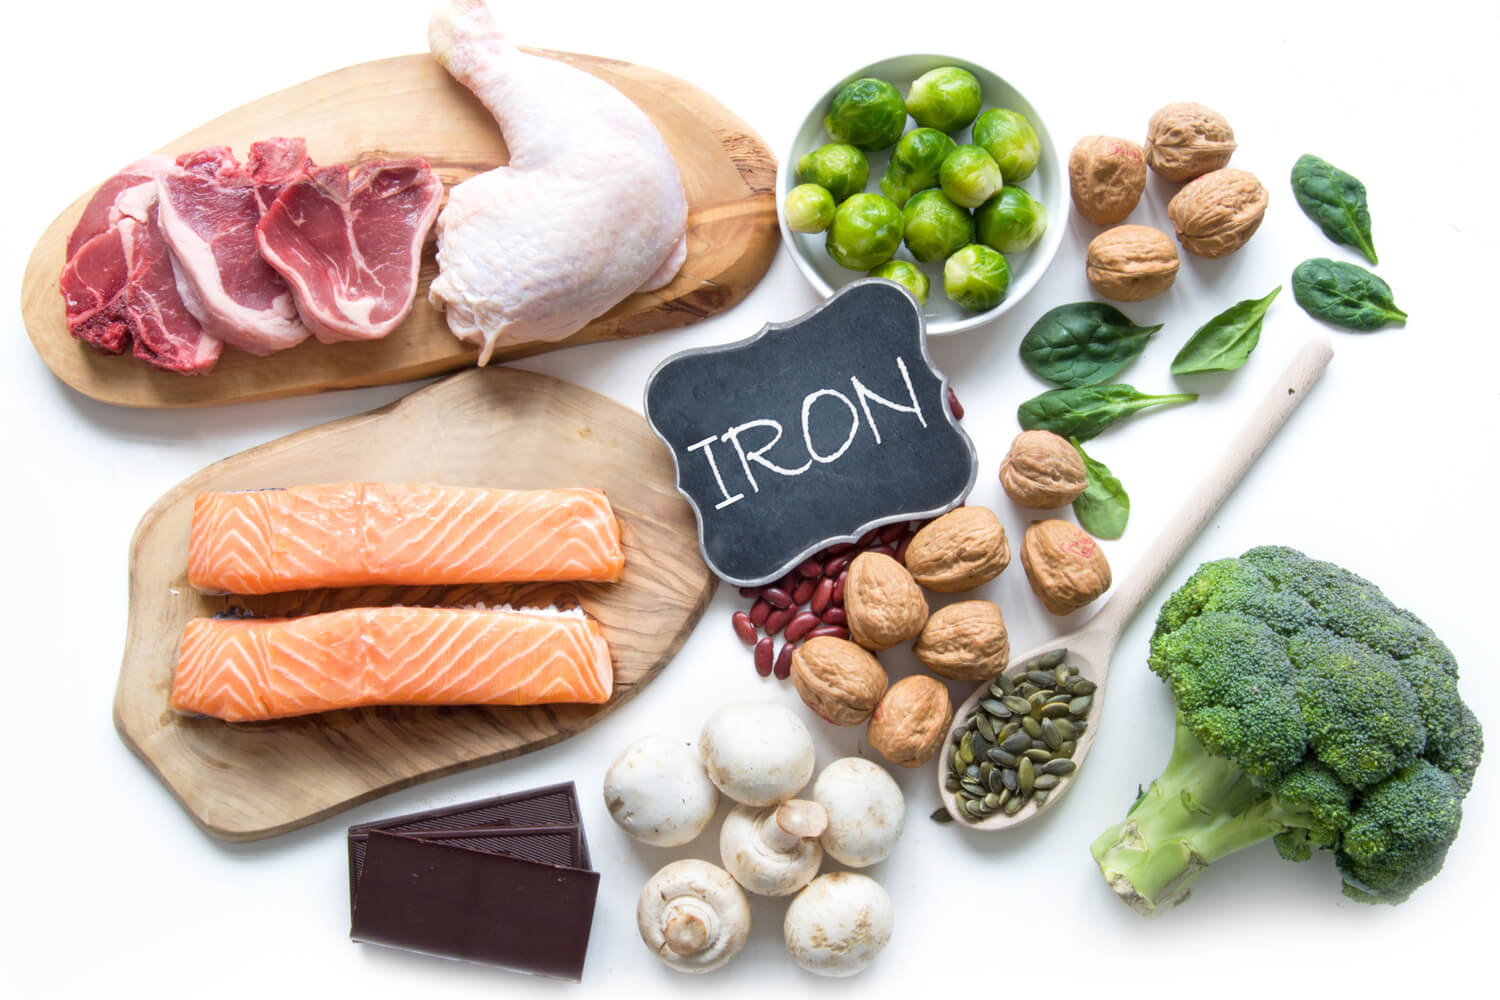 iron rich food items